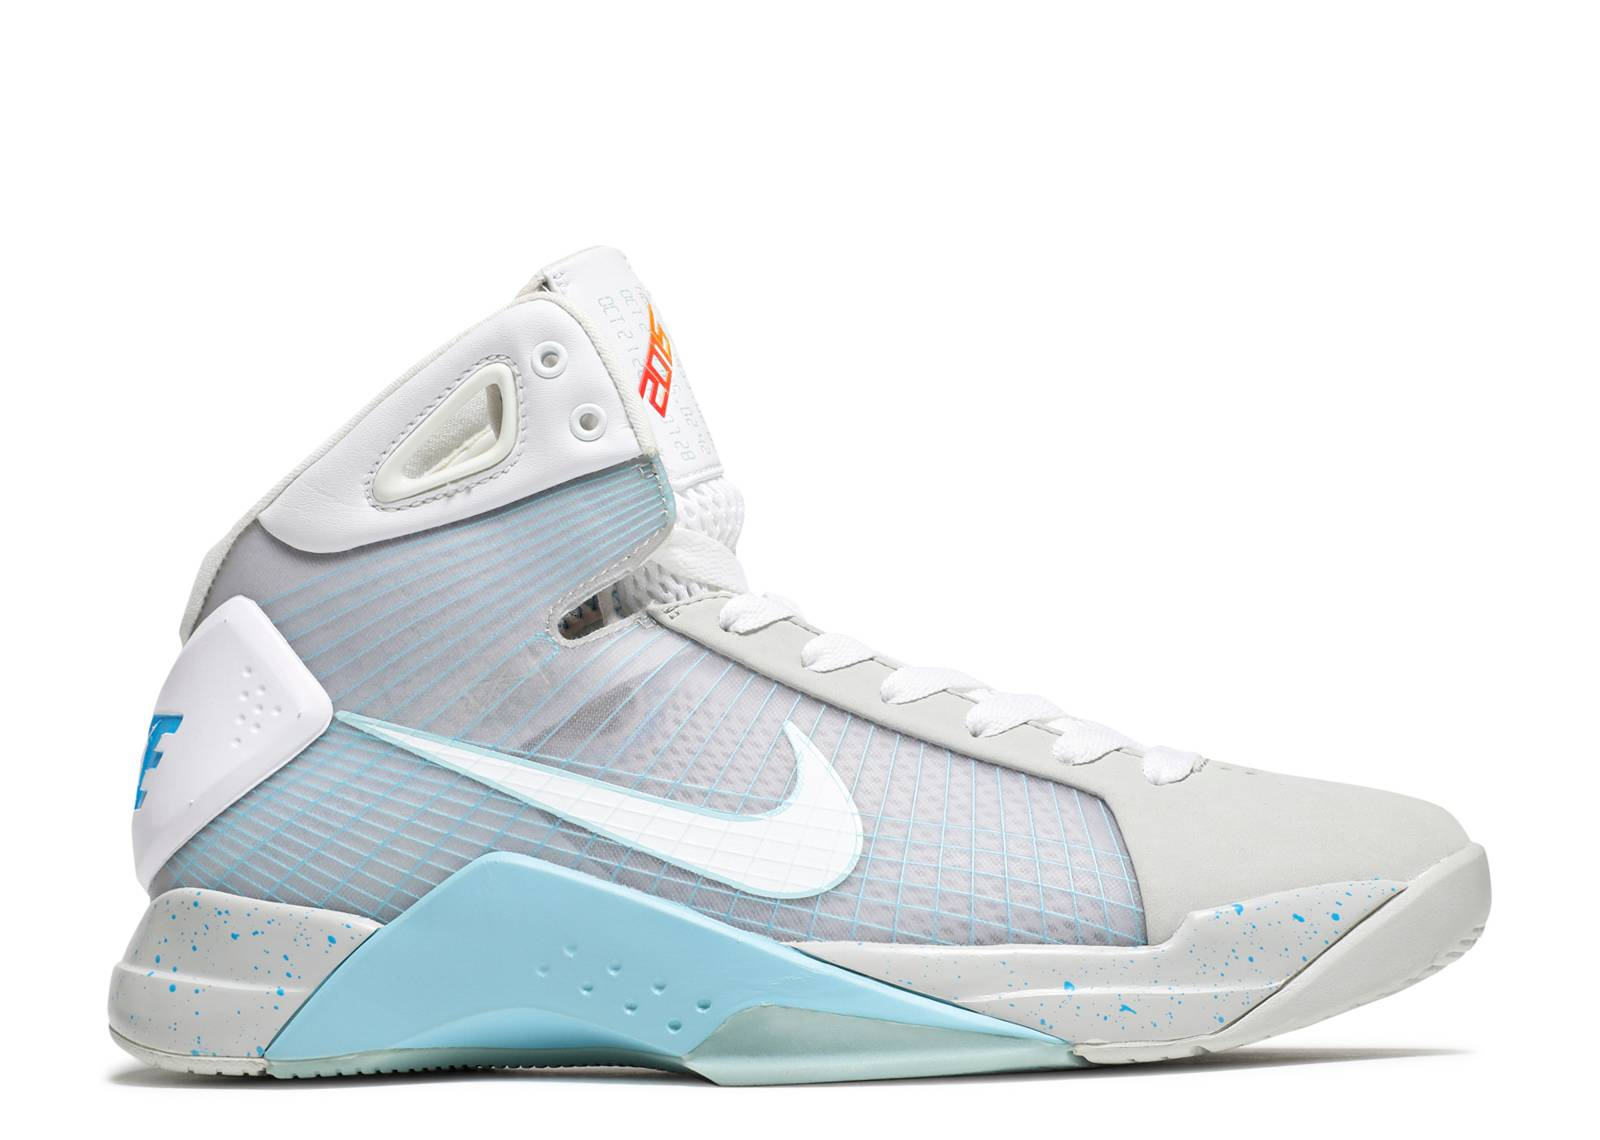 Nike Air Mag Owners Guide Boys Nike Fleece Joggers For Women Shoes ... ec6628ac4